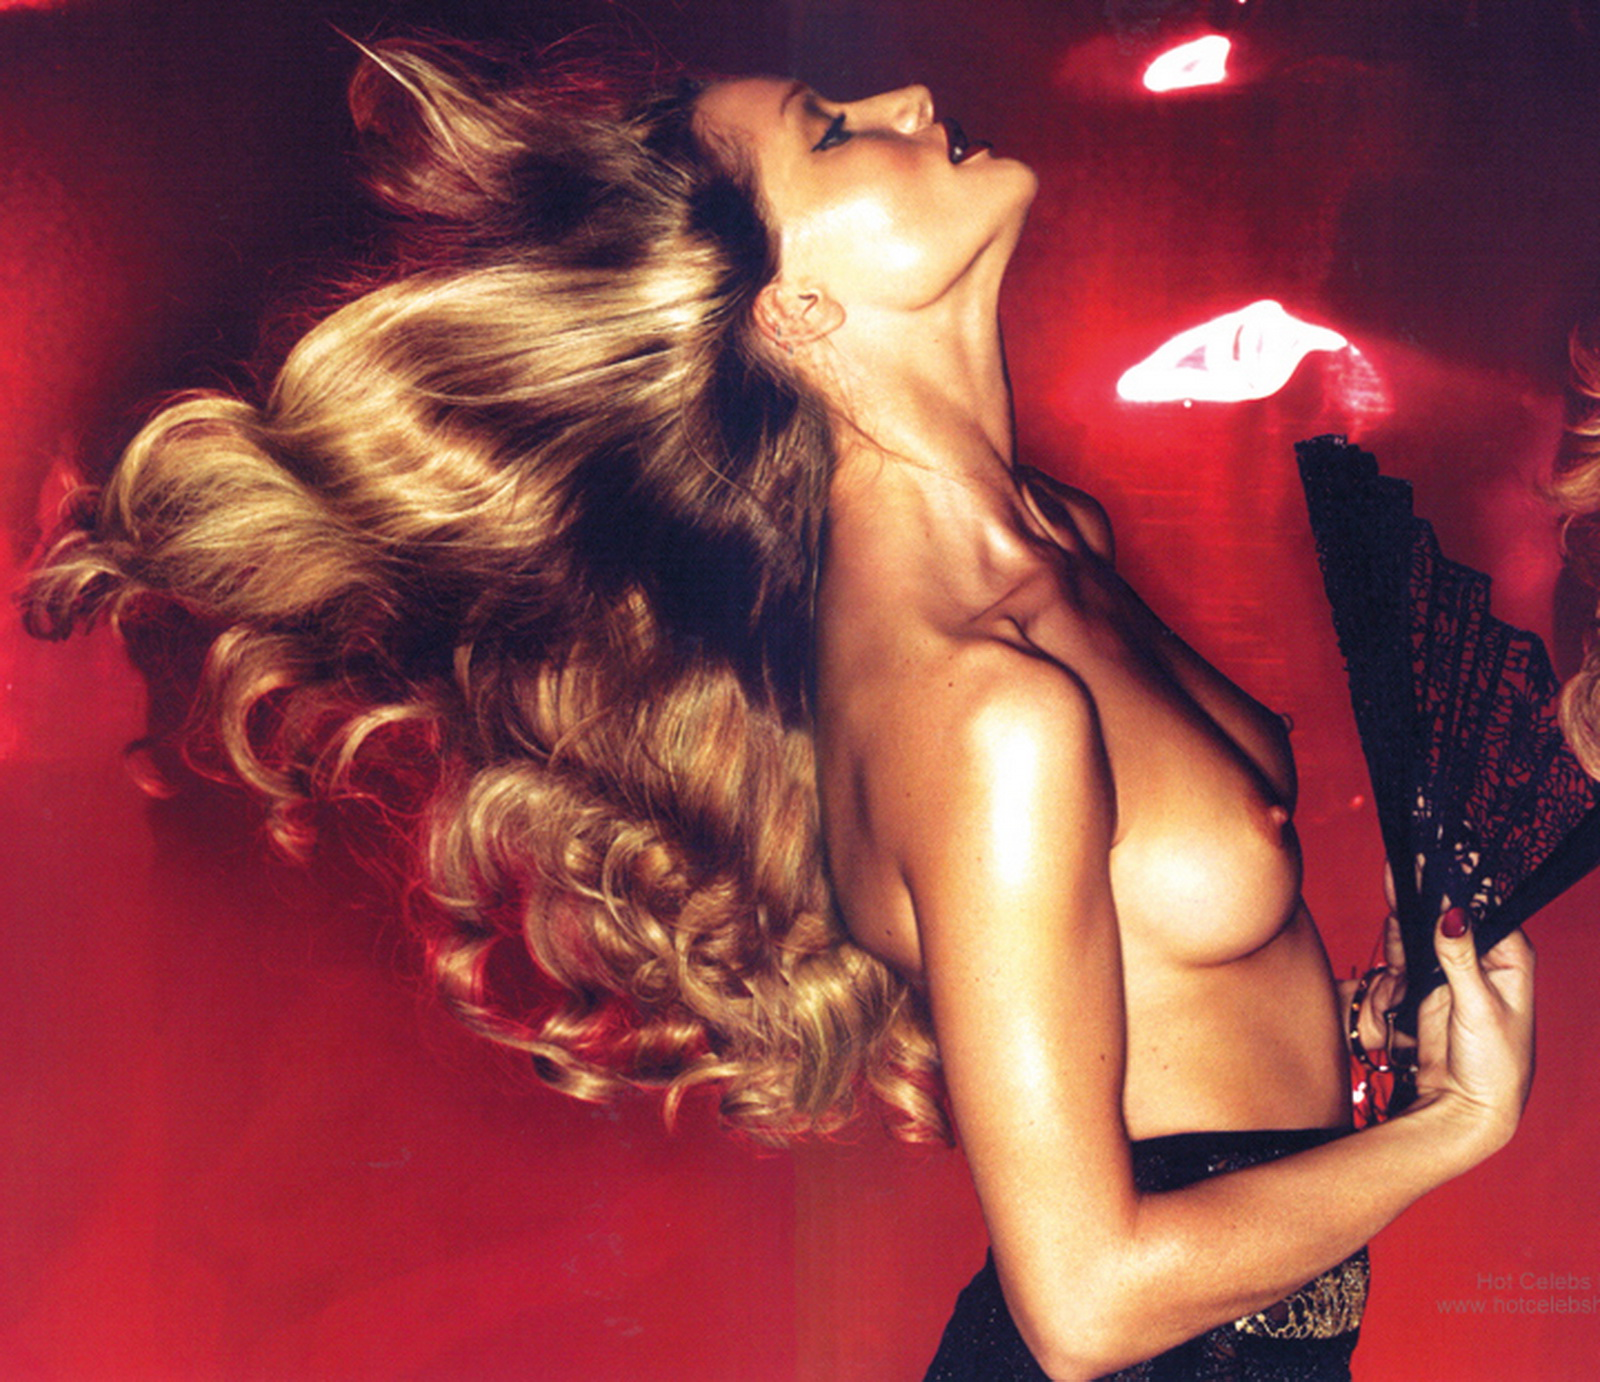 http://2.bp.blogspot.com/_Jgc-vQ1t70k/TUkkRX3phsI/AAAAAAAAAlg/POWJPM3hddo/s1600/Rosie_Huntington_Whiteley_toplessamazing_breast_in_Vogue_UK_magazine.jpg